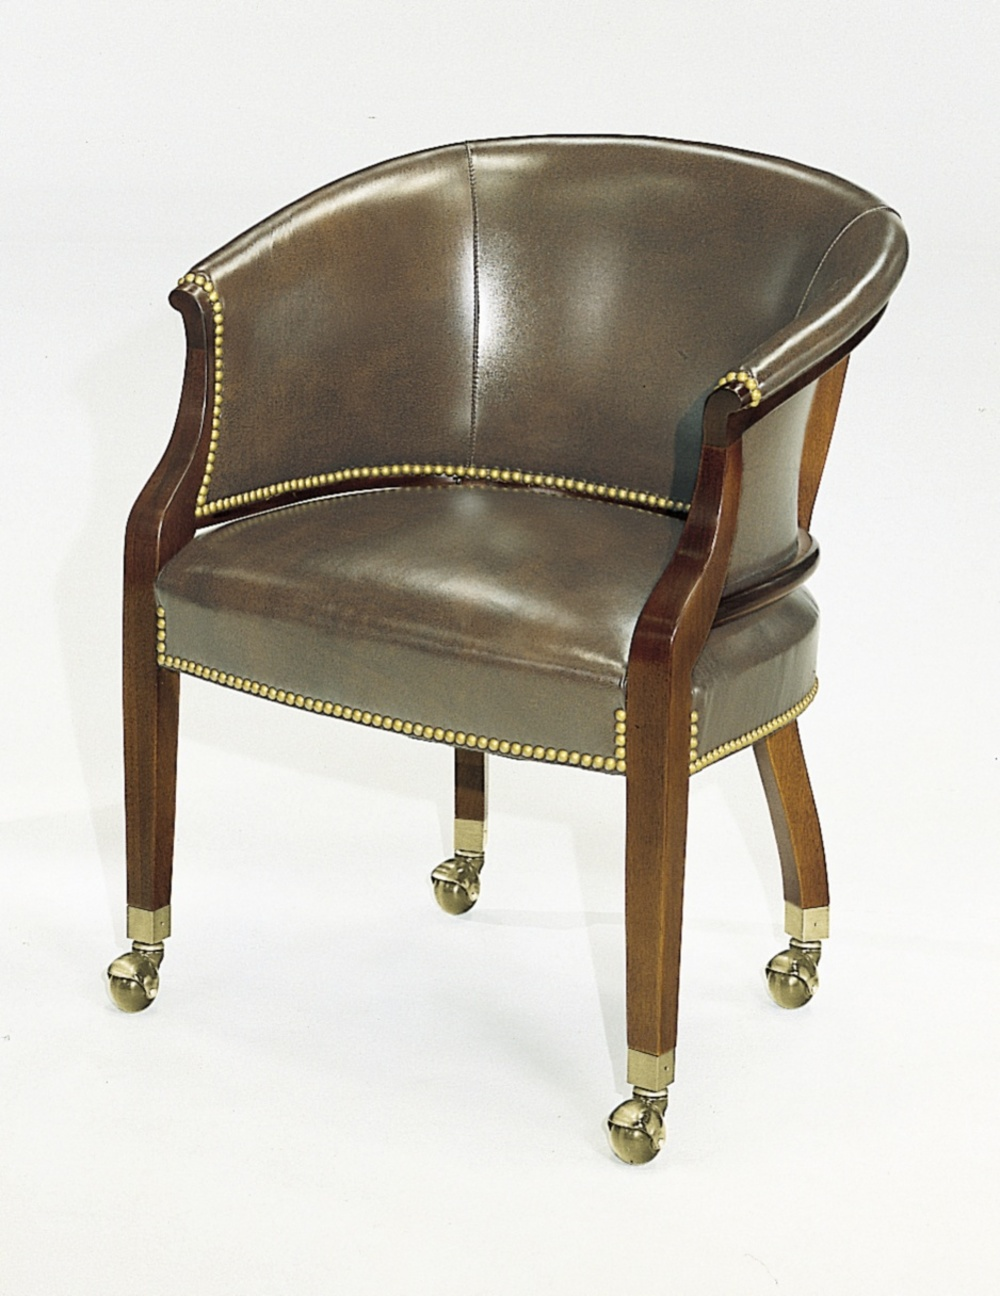 Hickory Chair - Tub Chair with Casters